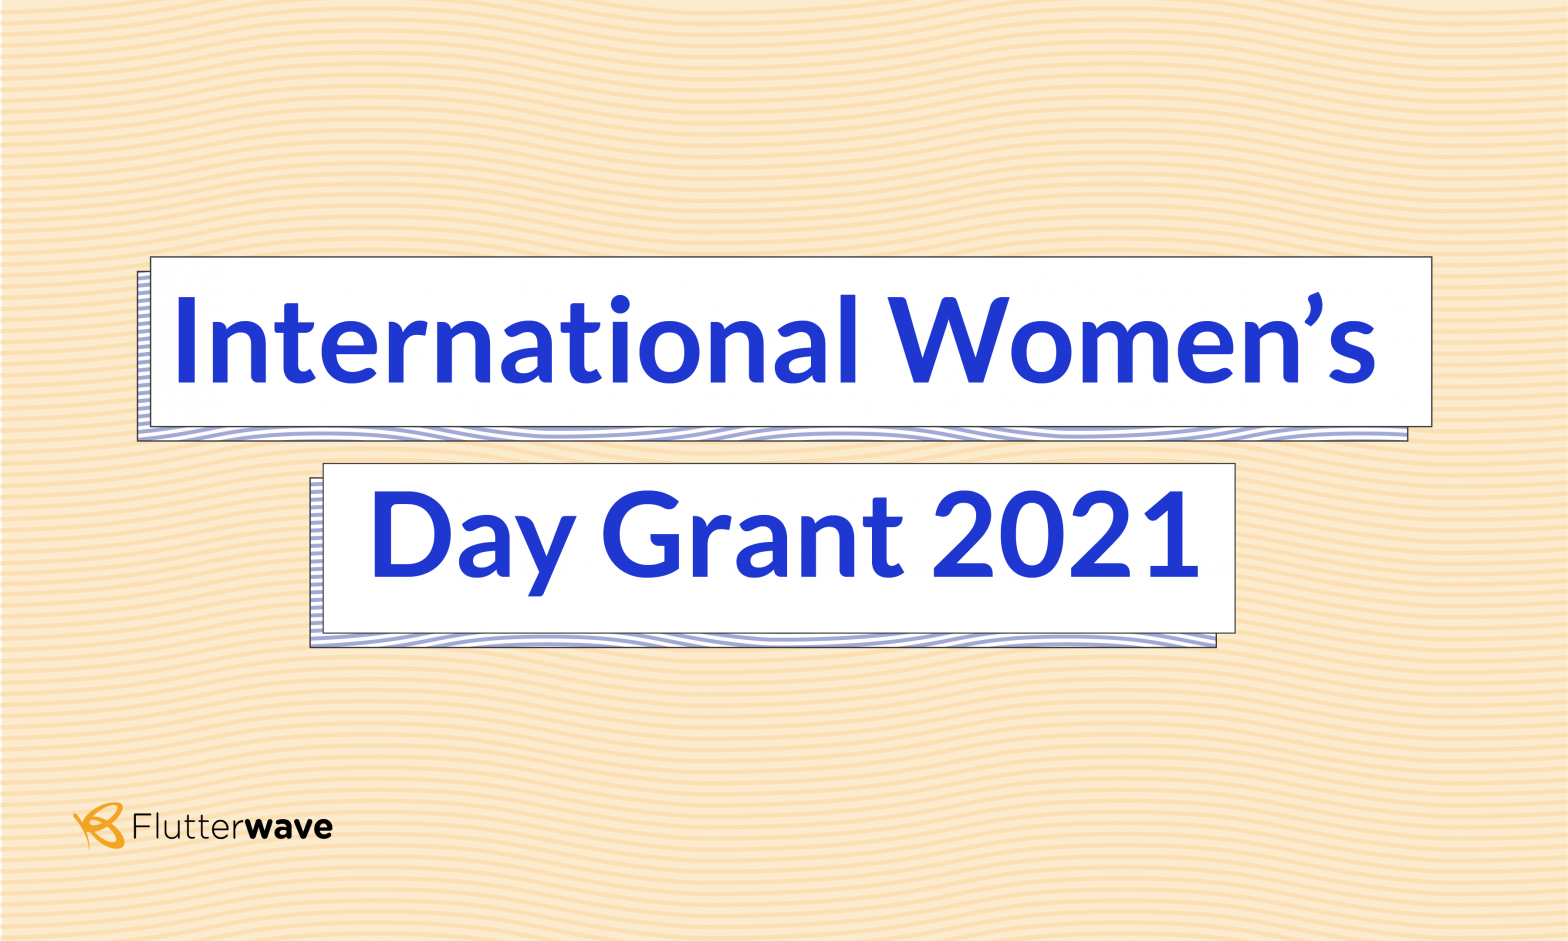 International Women's Day Grant